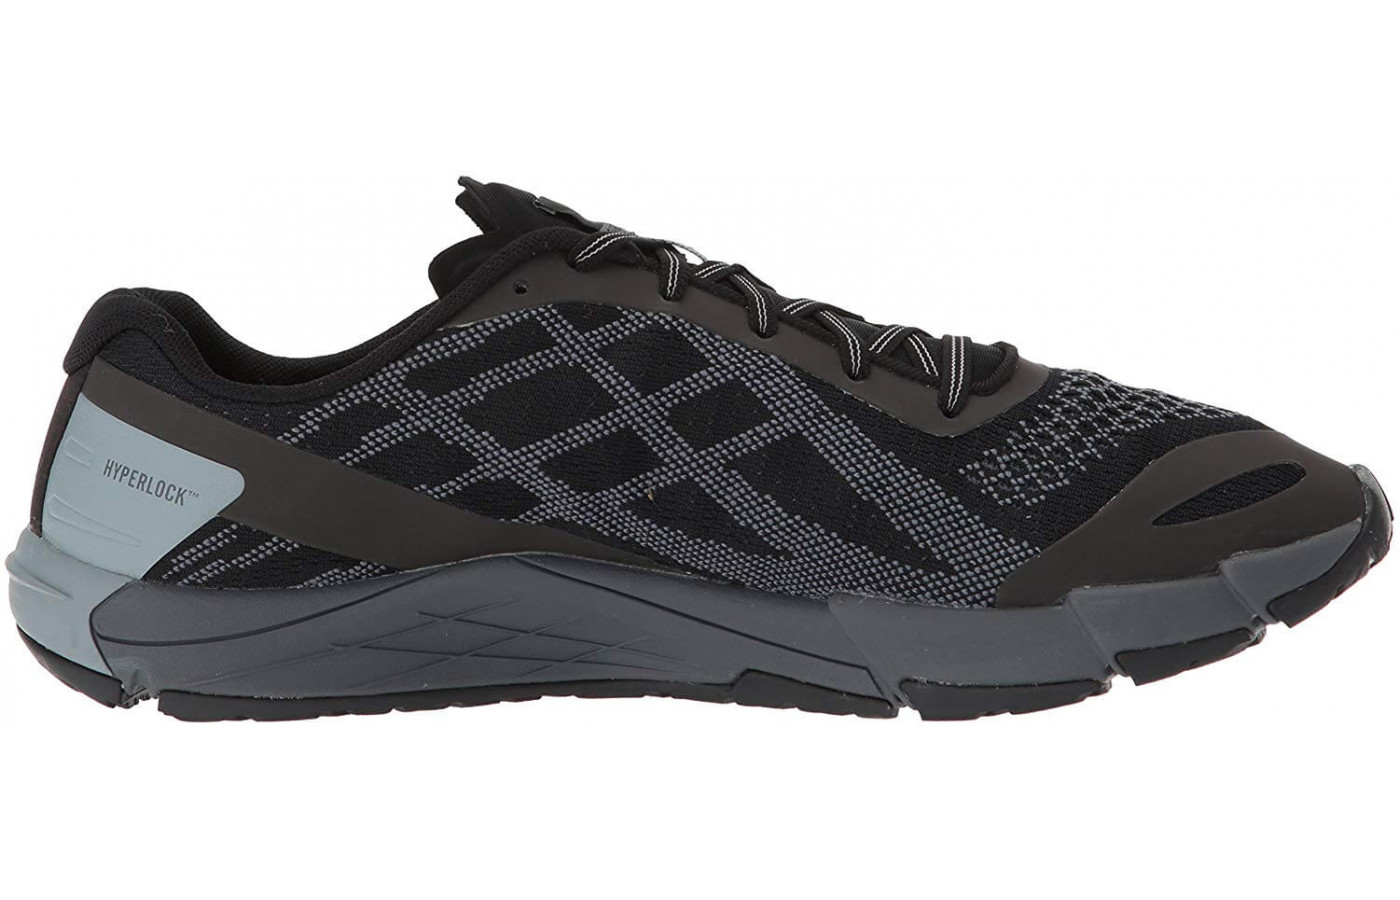 Merrell Bare Access Flex E-Mesh side